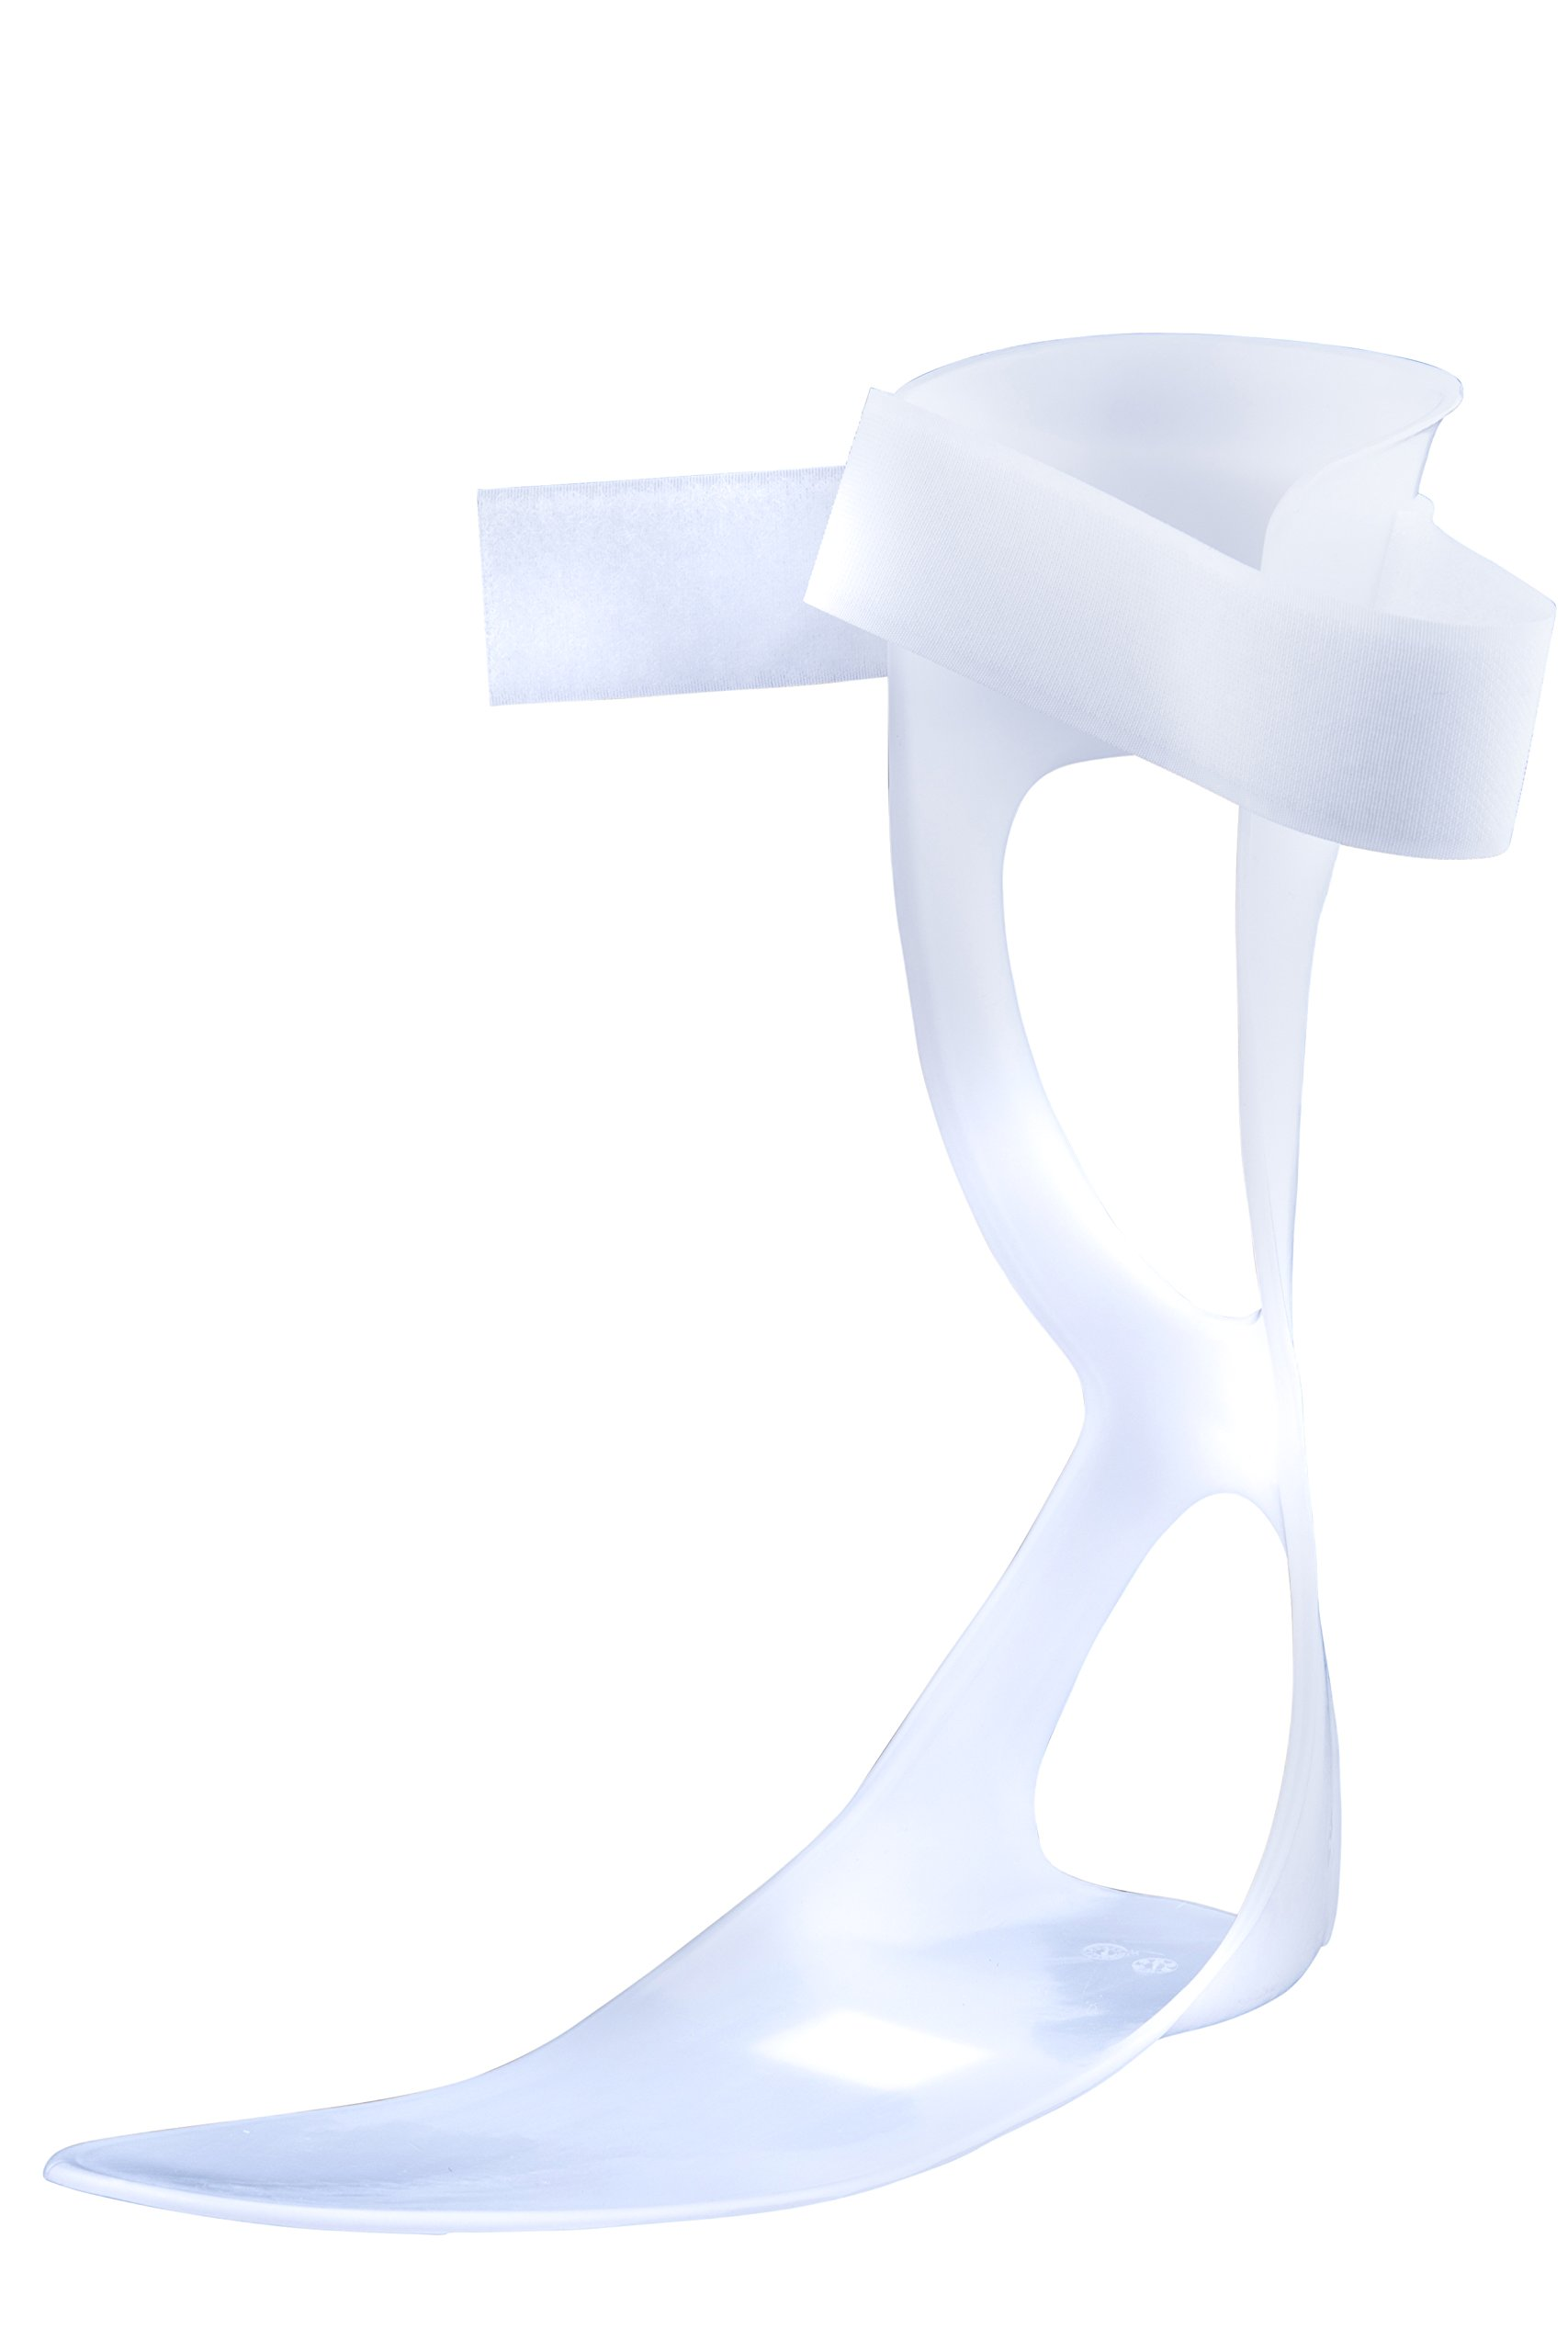 Swedish Ankle Foot Orthosis (AFO) Foot and Ankle Support - Women's Left